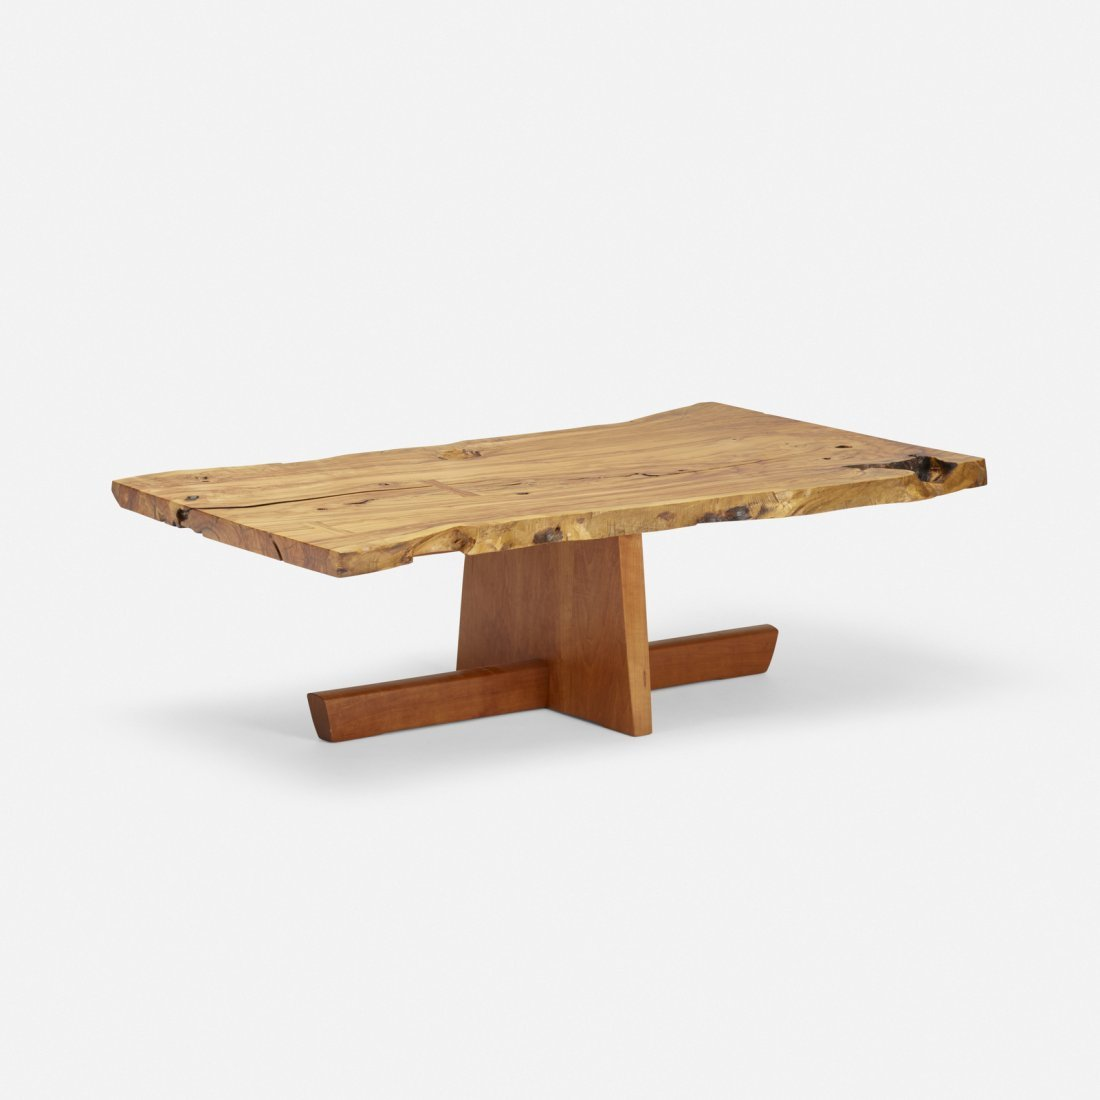 Mira Nakashima, Minguren I coffee table